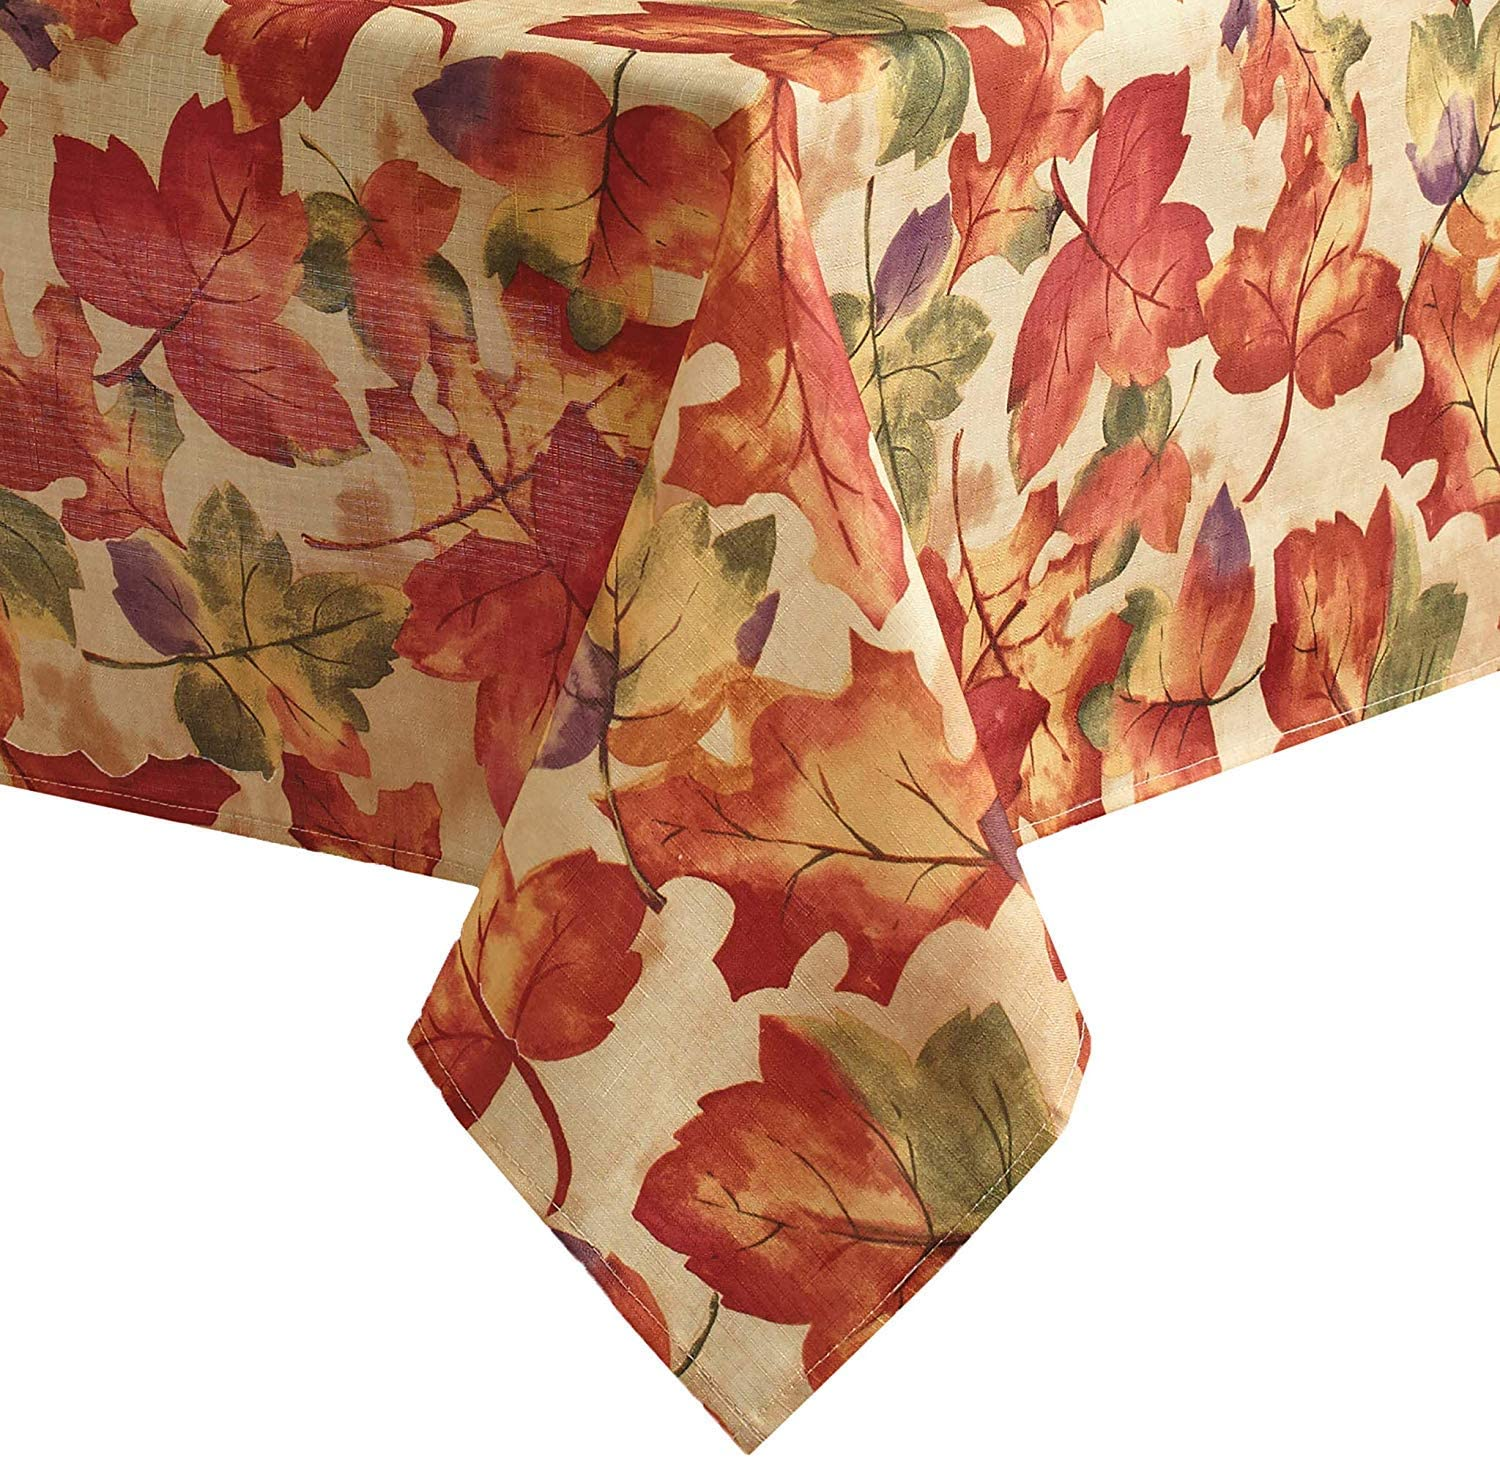 Newbridge Autumn Leaf Collage Contemporary Thanksgiving and Fall Season Fabric Tablecloth, Impressionist Fall Leaves Soil Resistant, No Iron Easy Care Tablecloth, 52 Inch x 52 Square